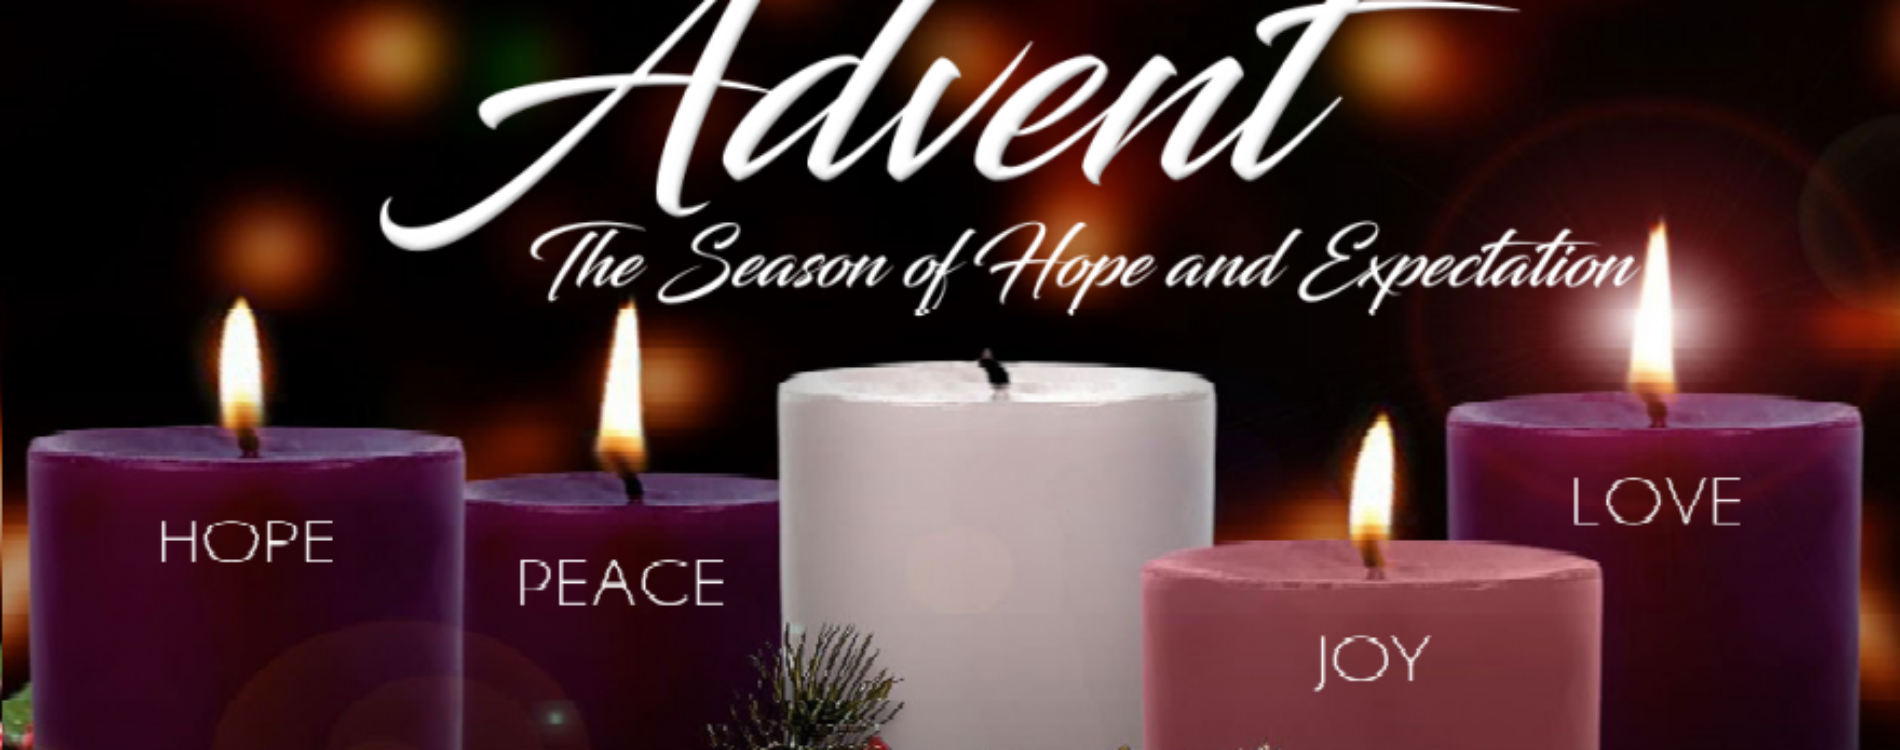 December Season of Advent – 2-2